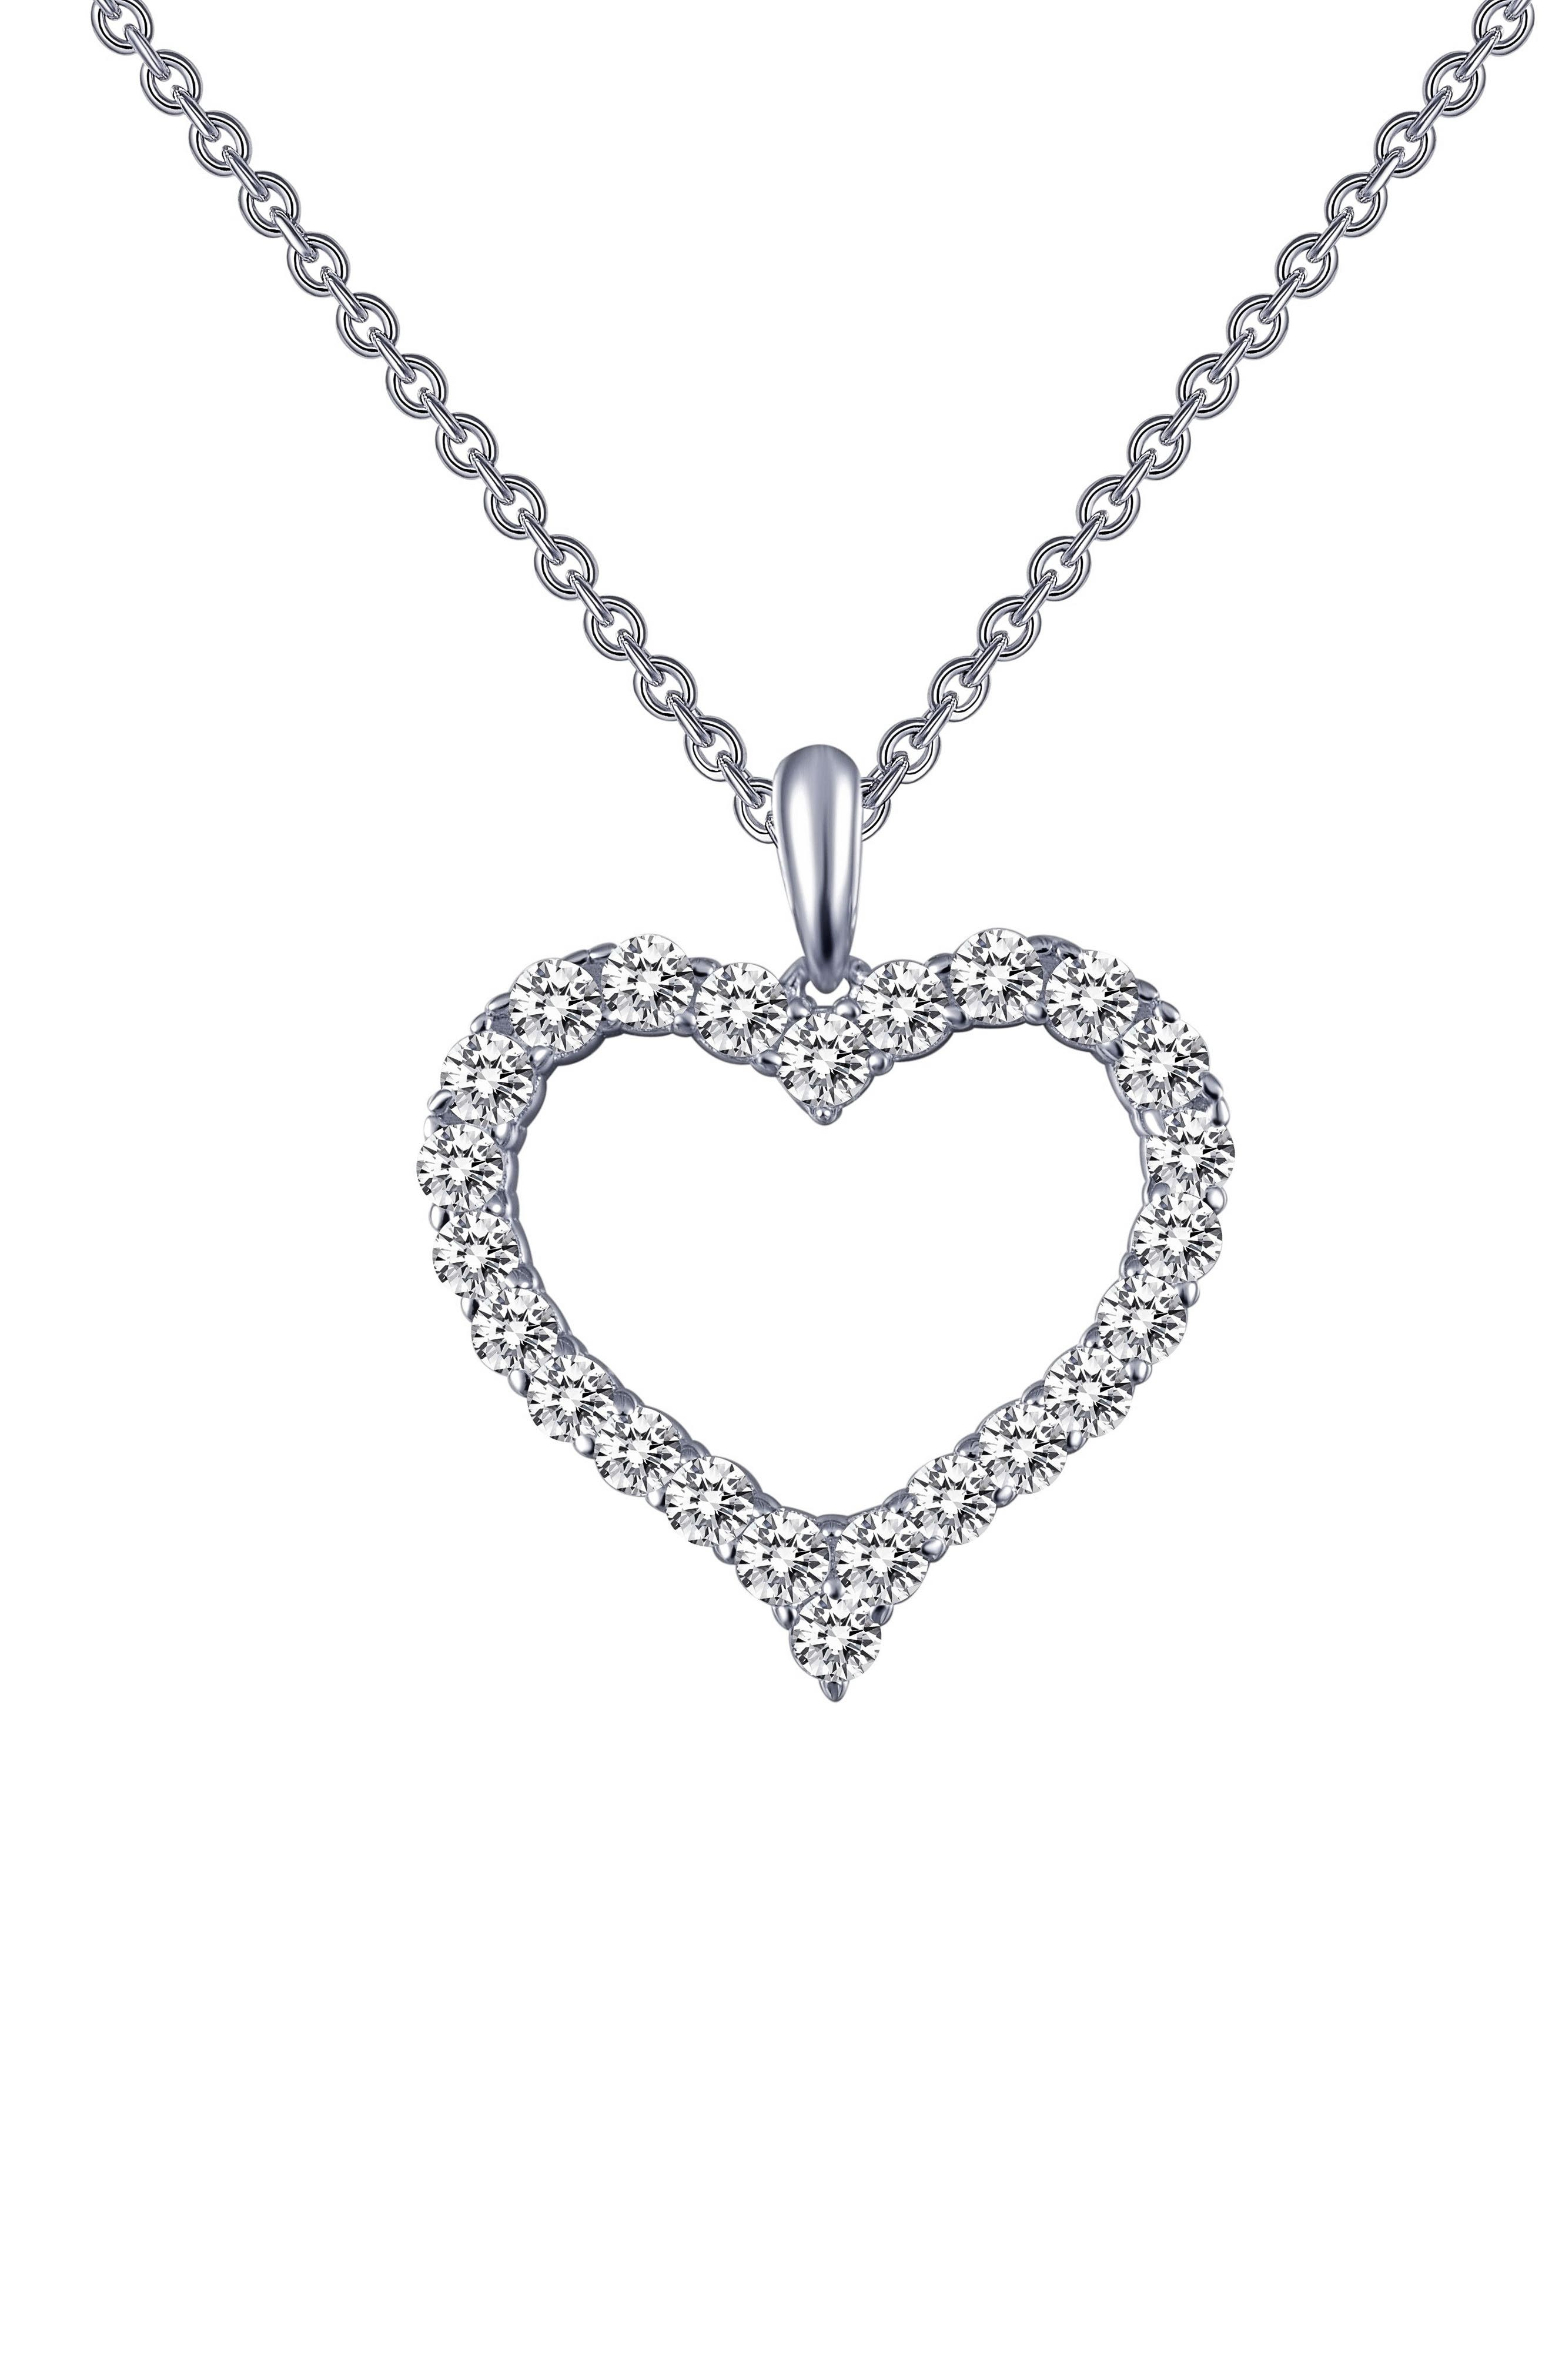 co christie and platinum necklace pendant diamond christies tiffany online s jewels eco